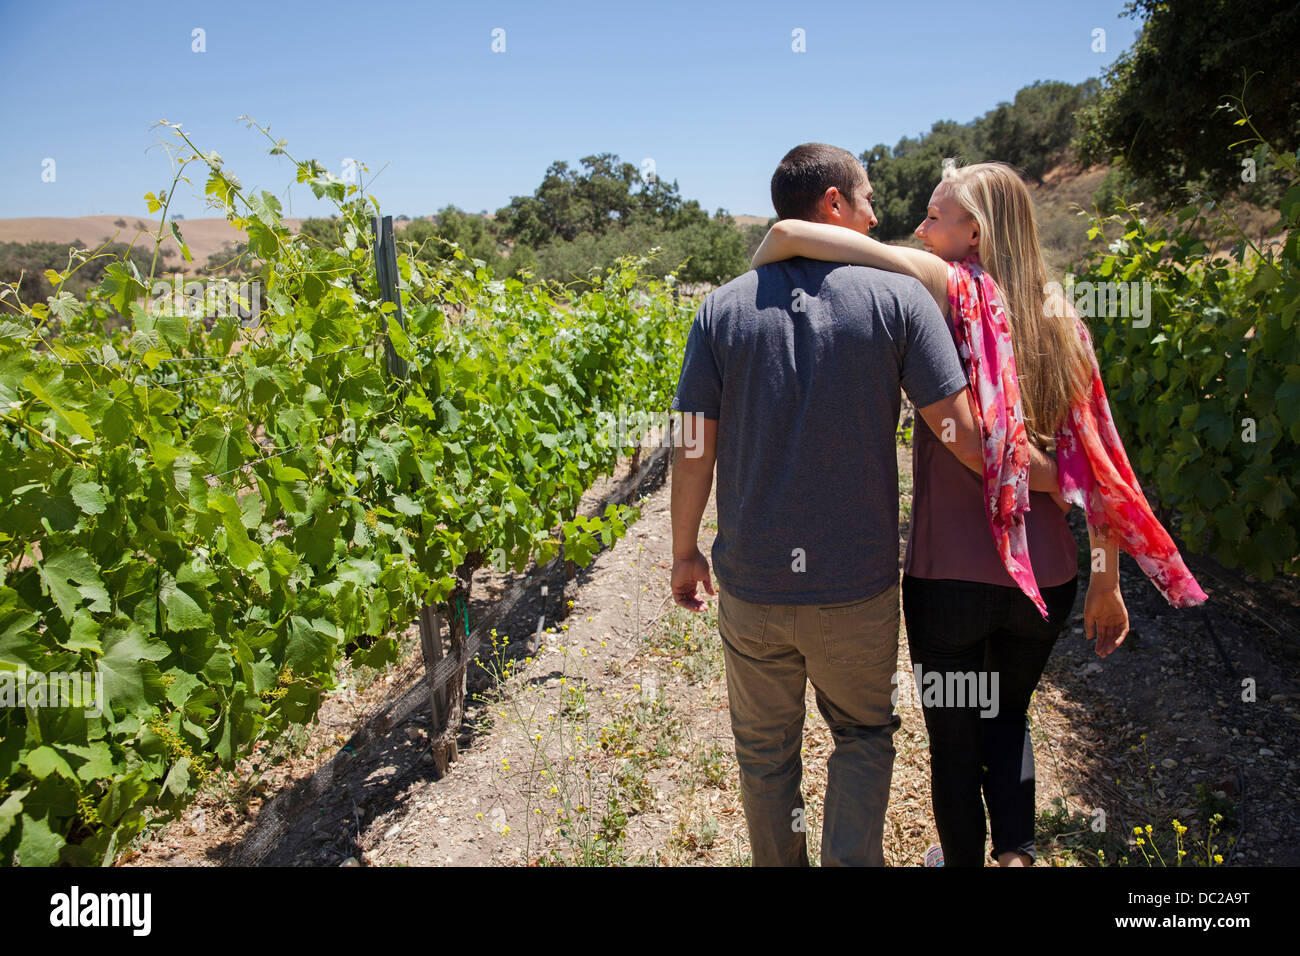 Young couple on path in vineyard, woman with arm around man - Stock Image